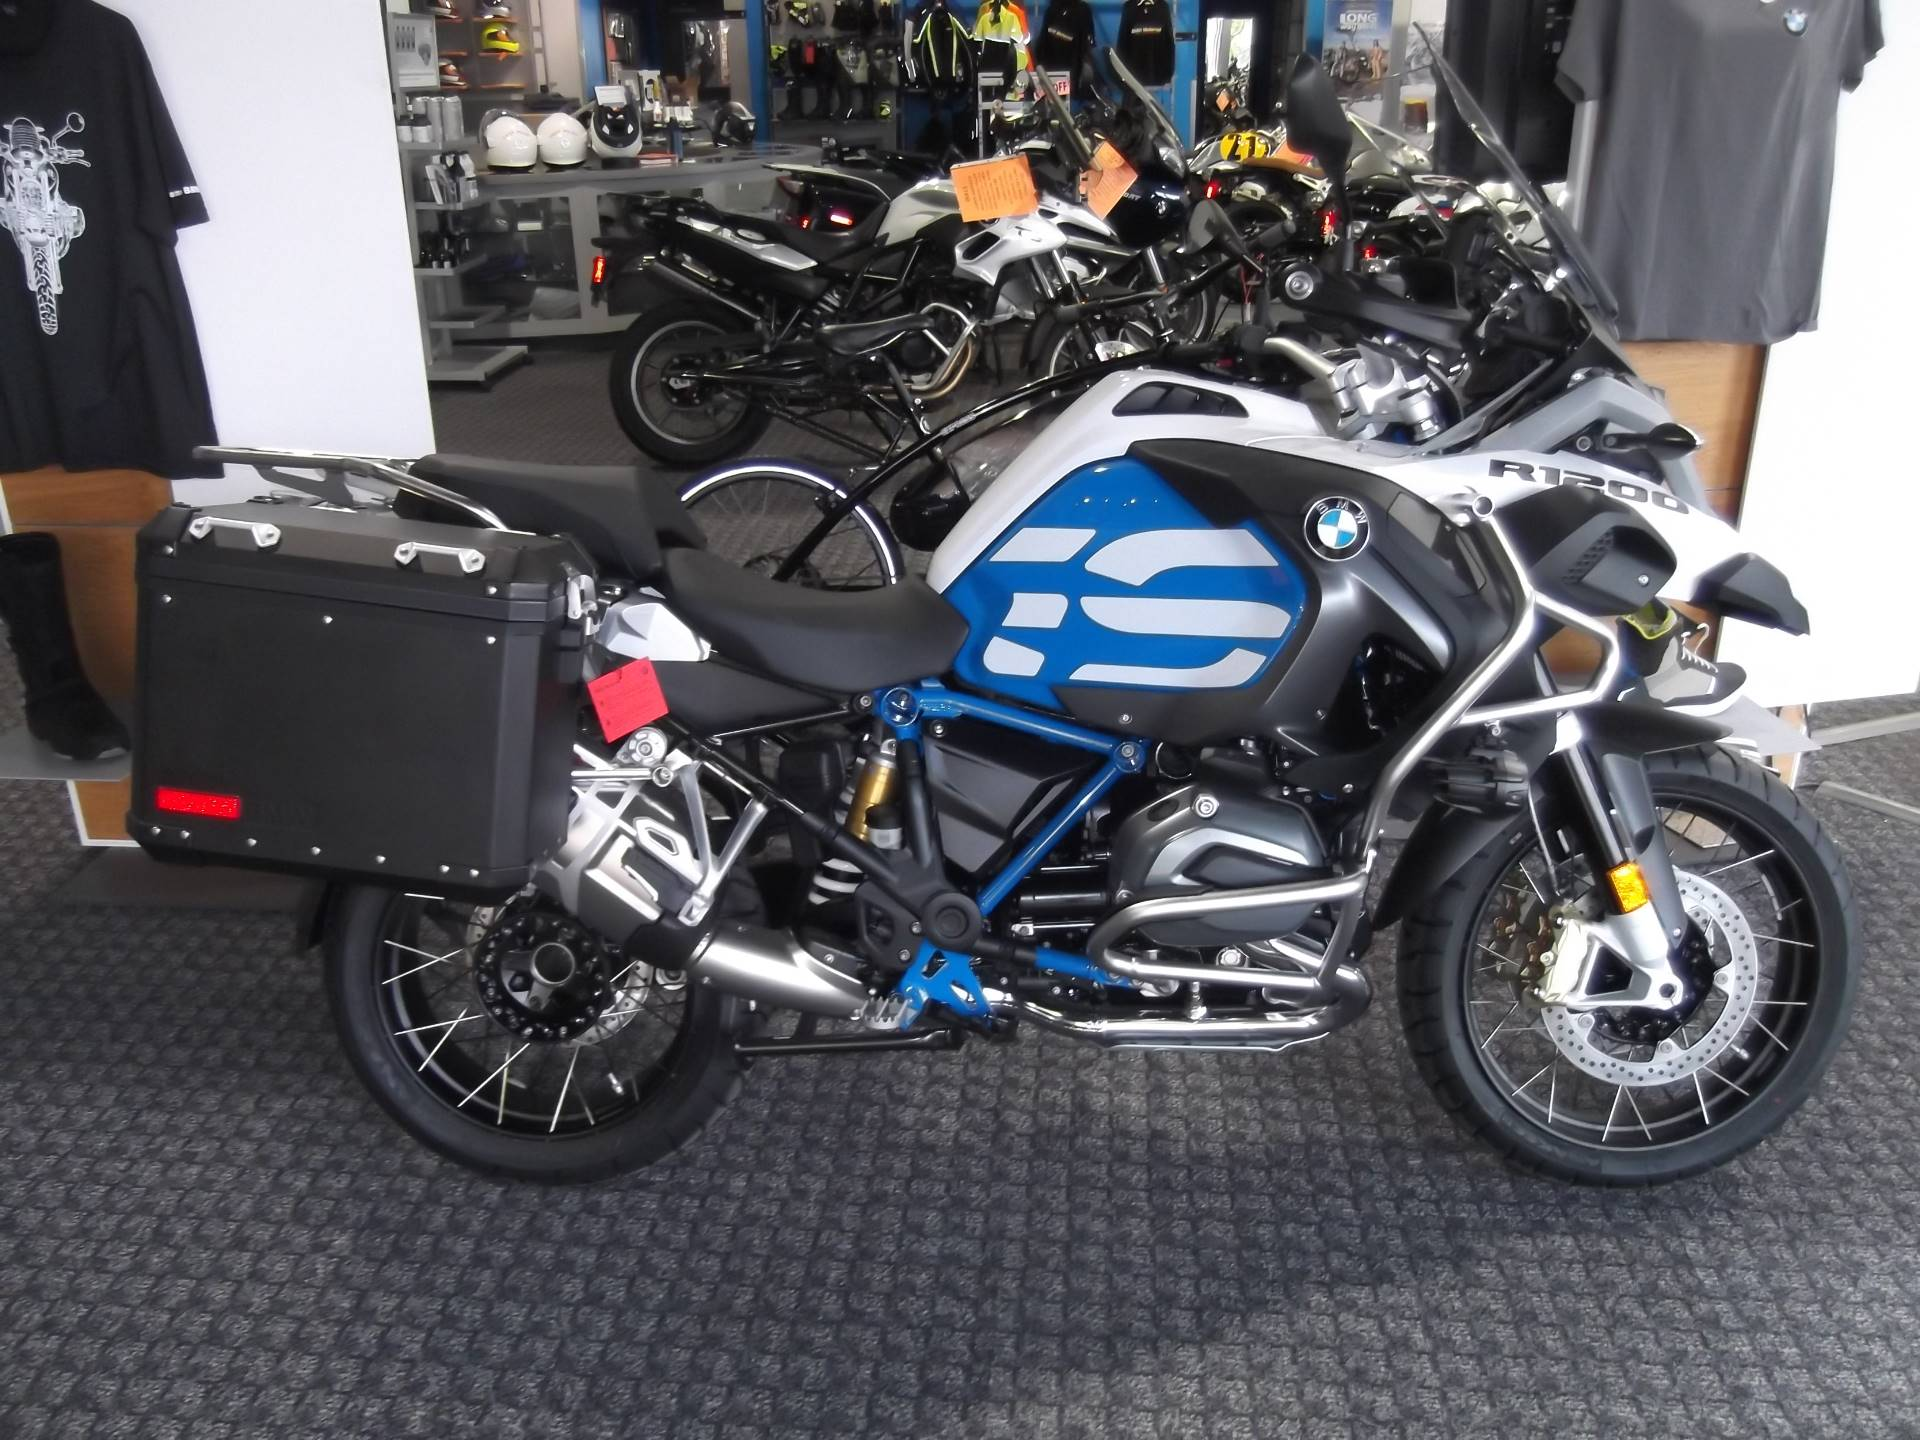 New 2018 BMW R1200GS ADVENTURE ****LOW SUSPENSION*** !! Motorcycles ...